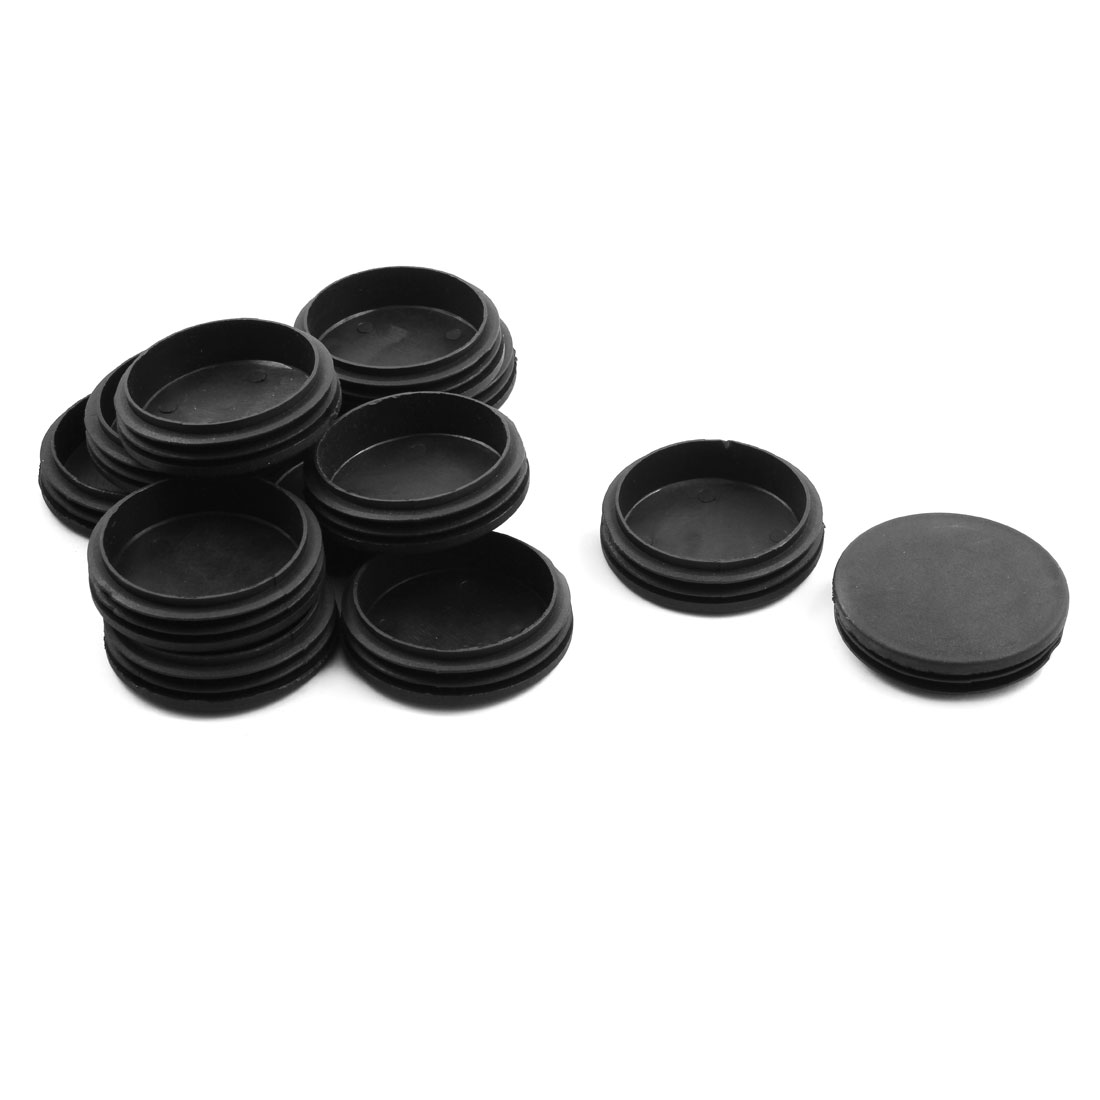 Home Plastic Round Shaped Chair Foot Cover Tube Insert Black 74mm Diameter 12pcs